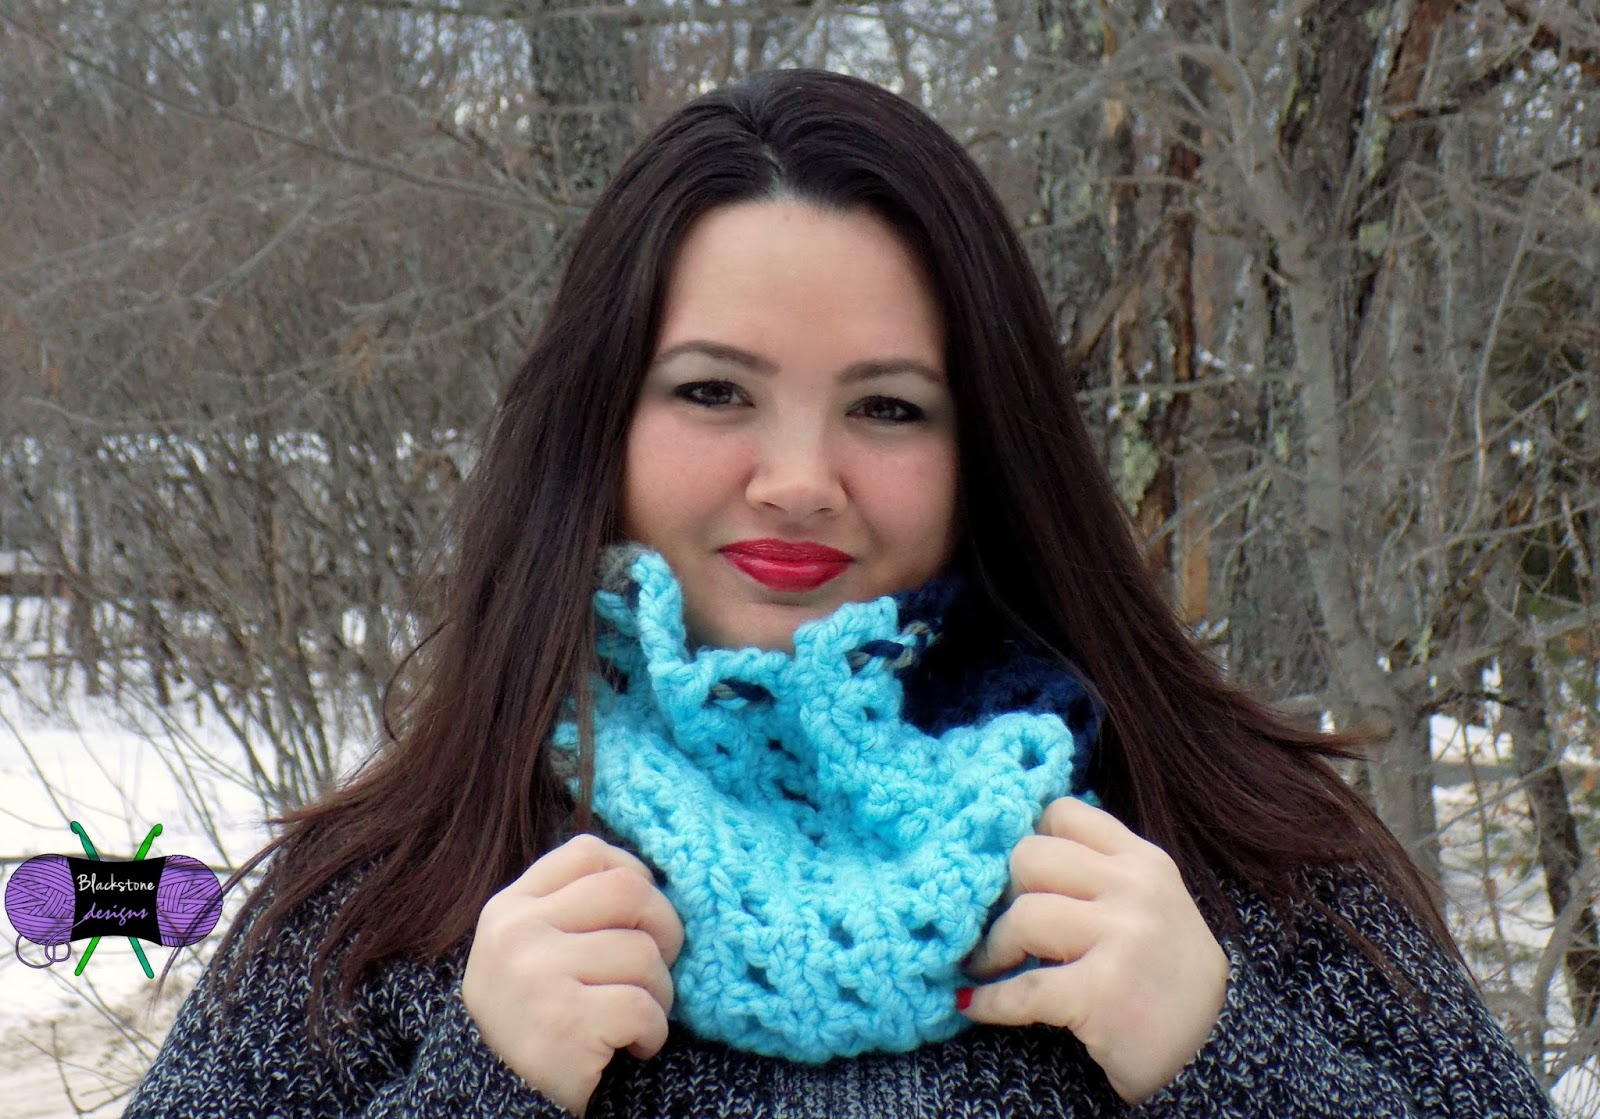 Designing Your Own Crochet Pattern Series - Finding the Perfect Design Ideas - Blackstone Design created this Colosseum Cowl with the Colosseum architecture in mind.